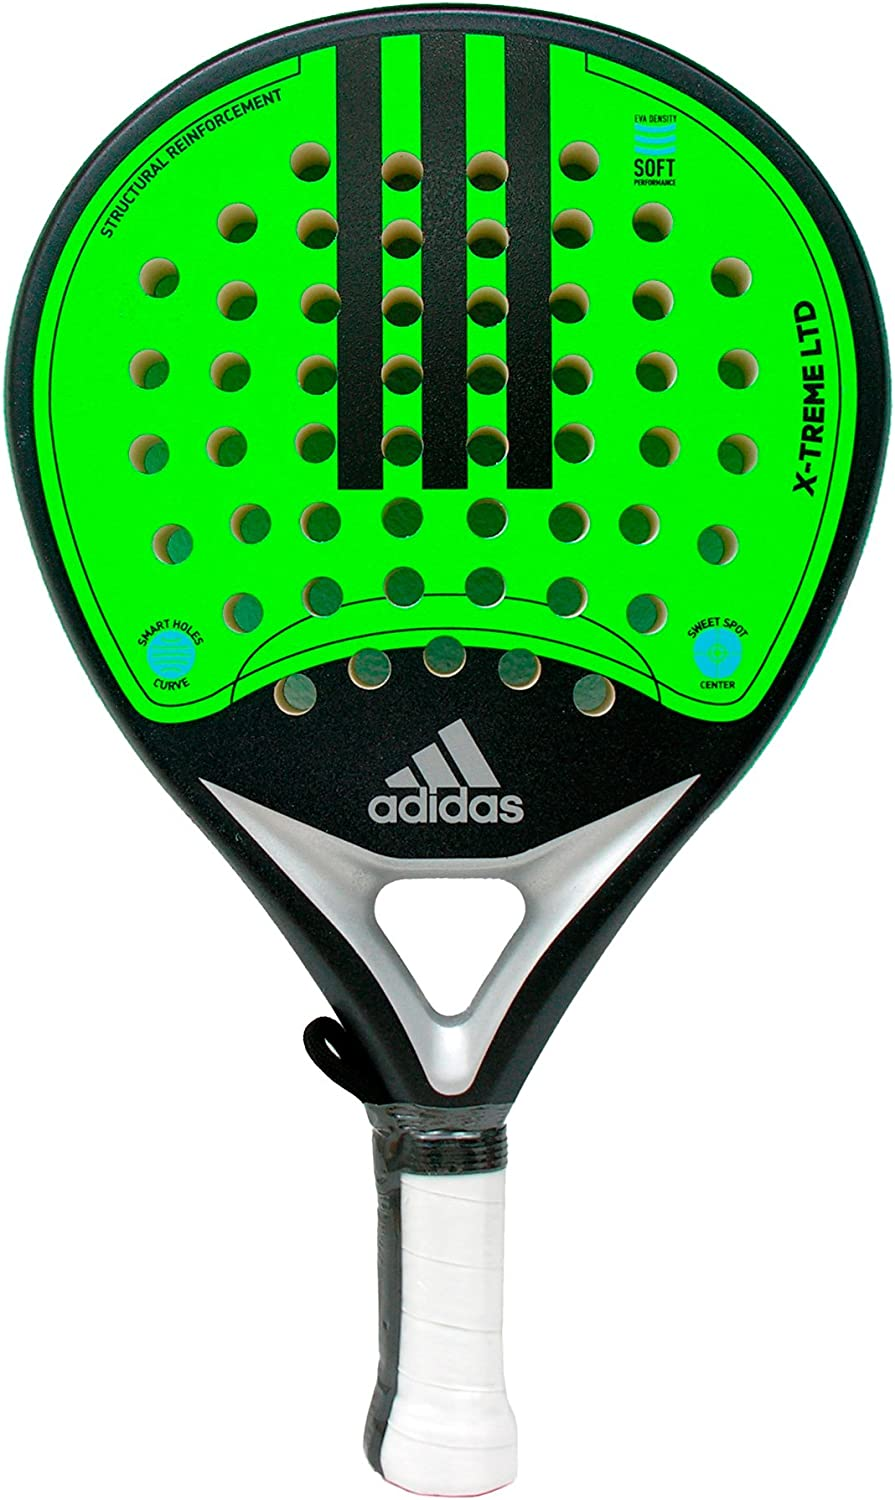 Pala Adidas X-Treme LTD Green: Amazon.es: Deportes y aire libre